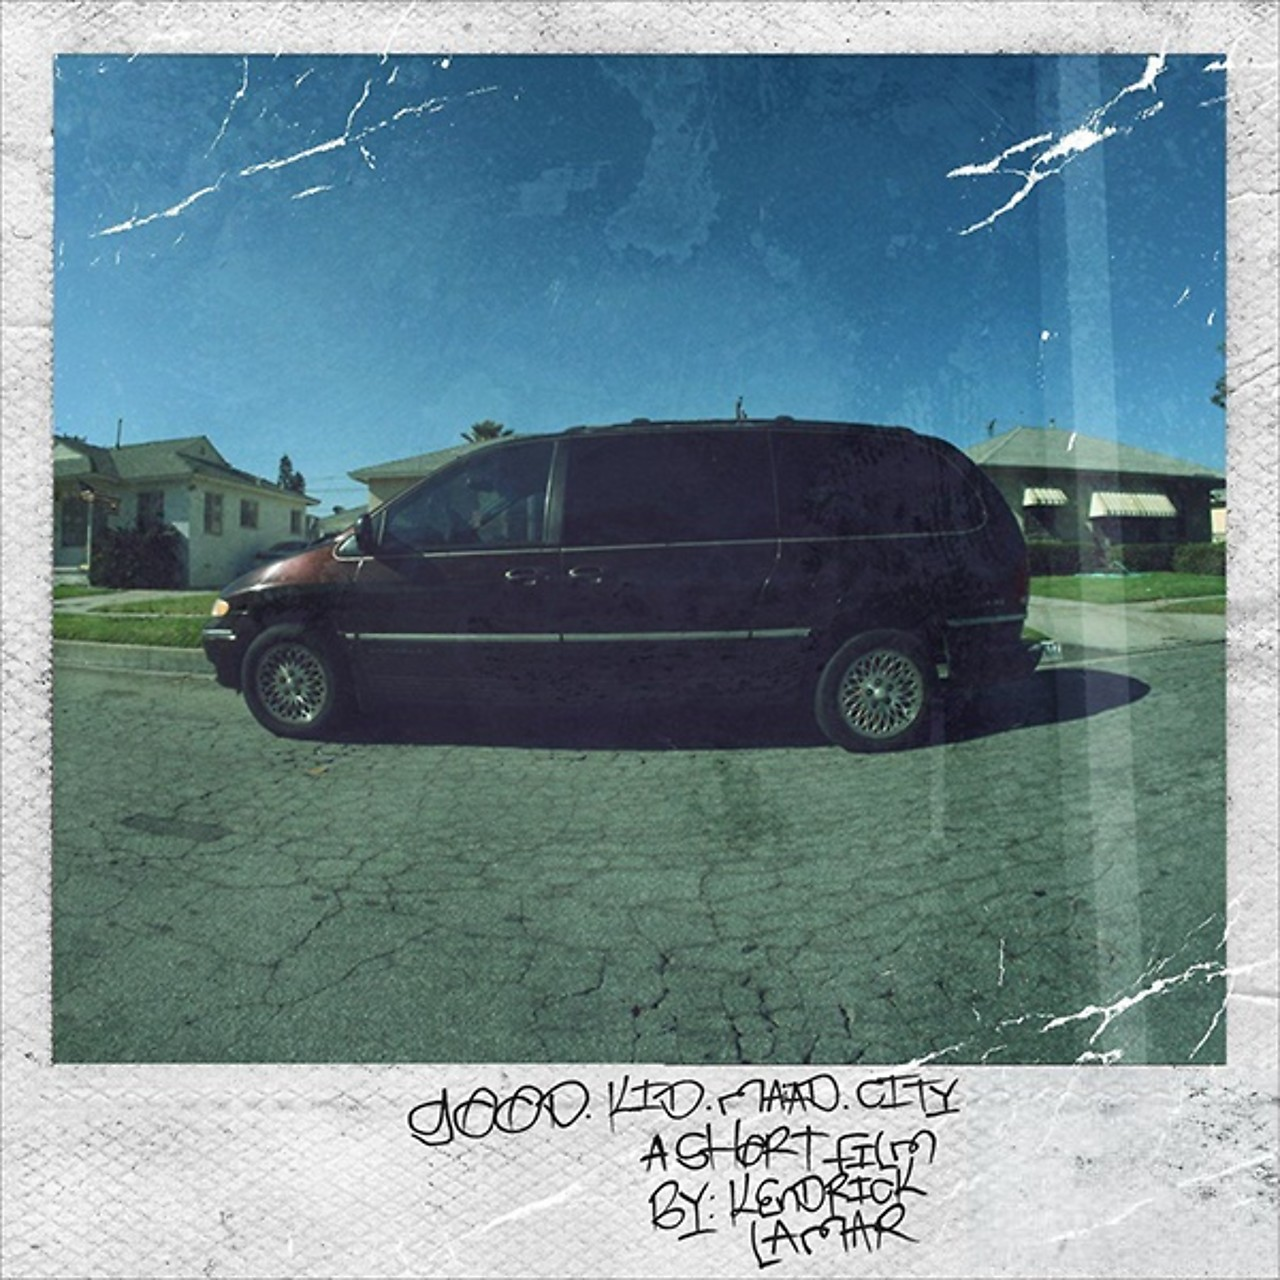 good kid maad city album download